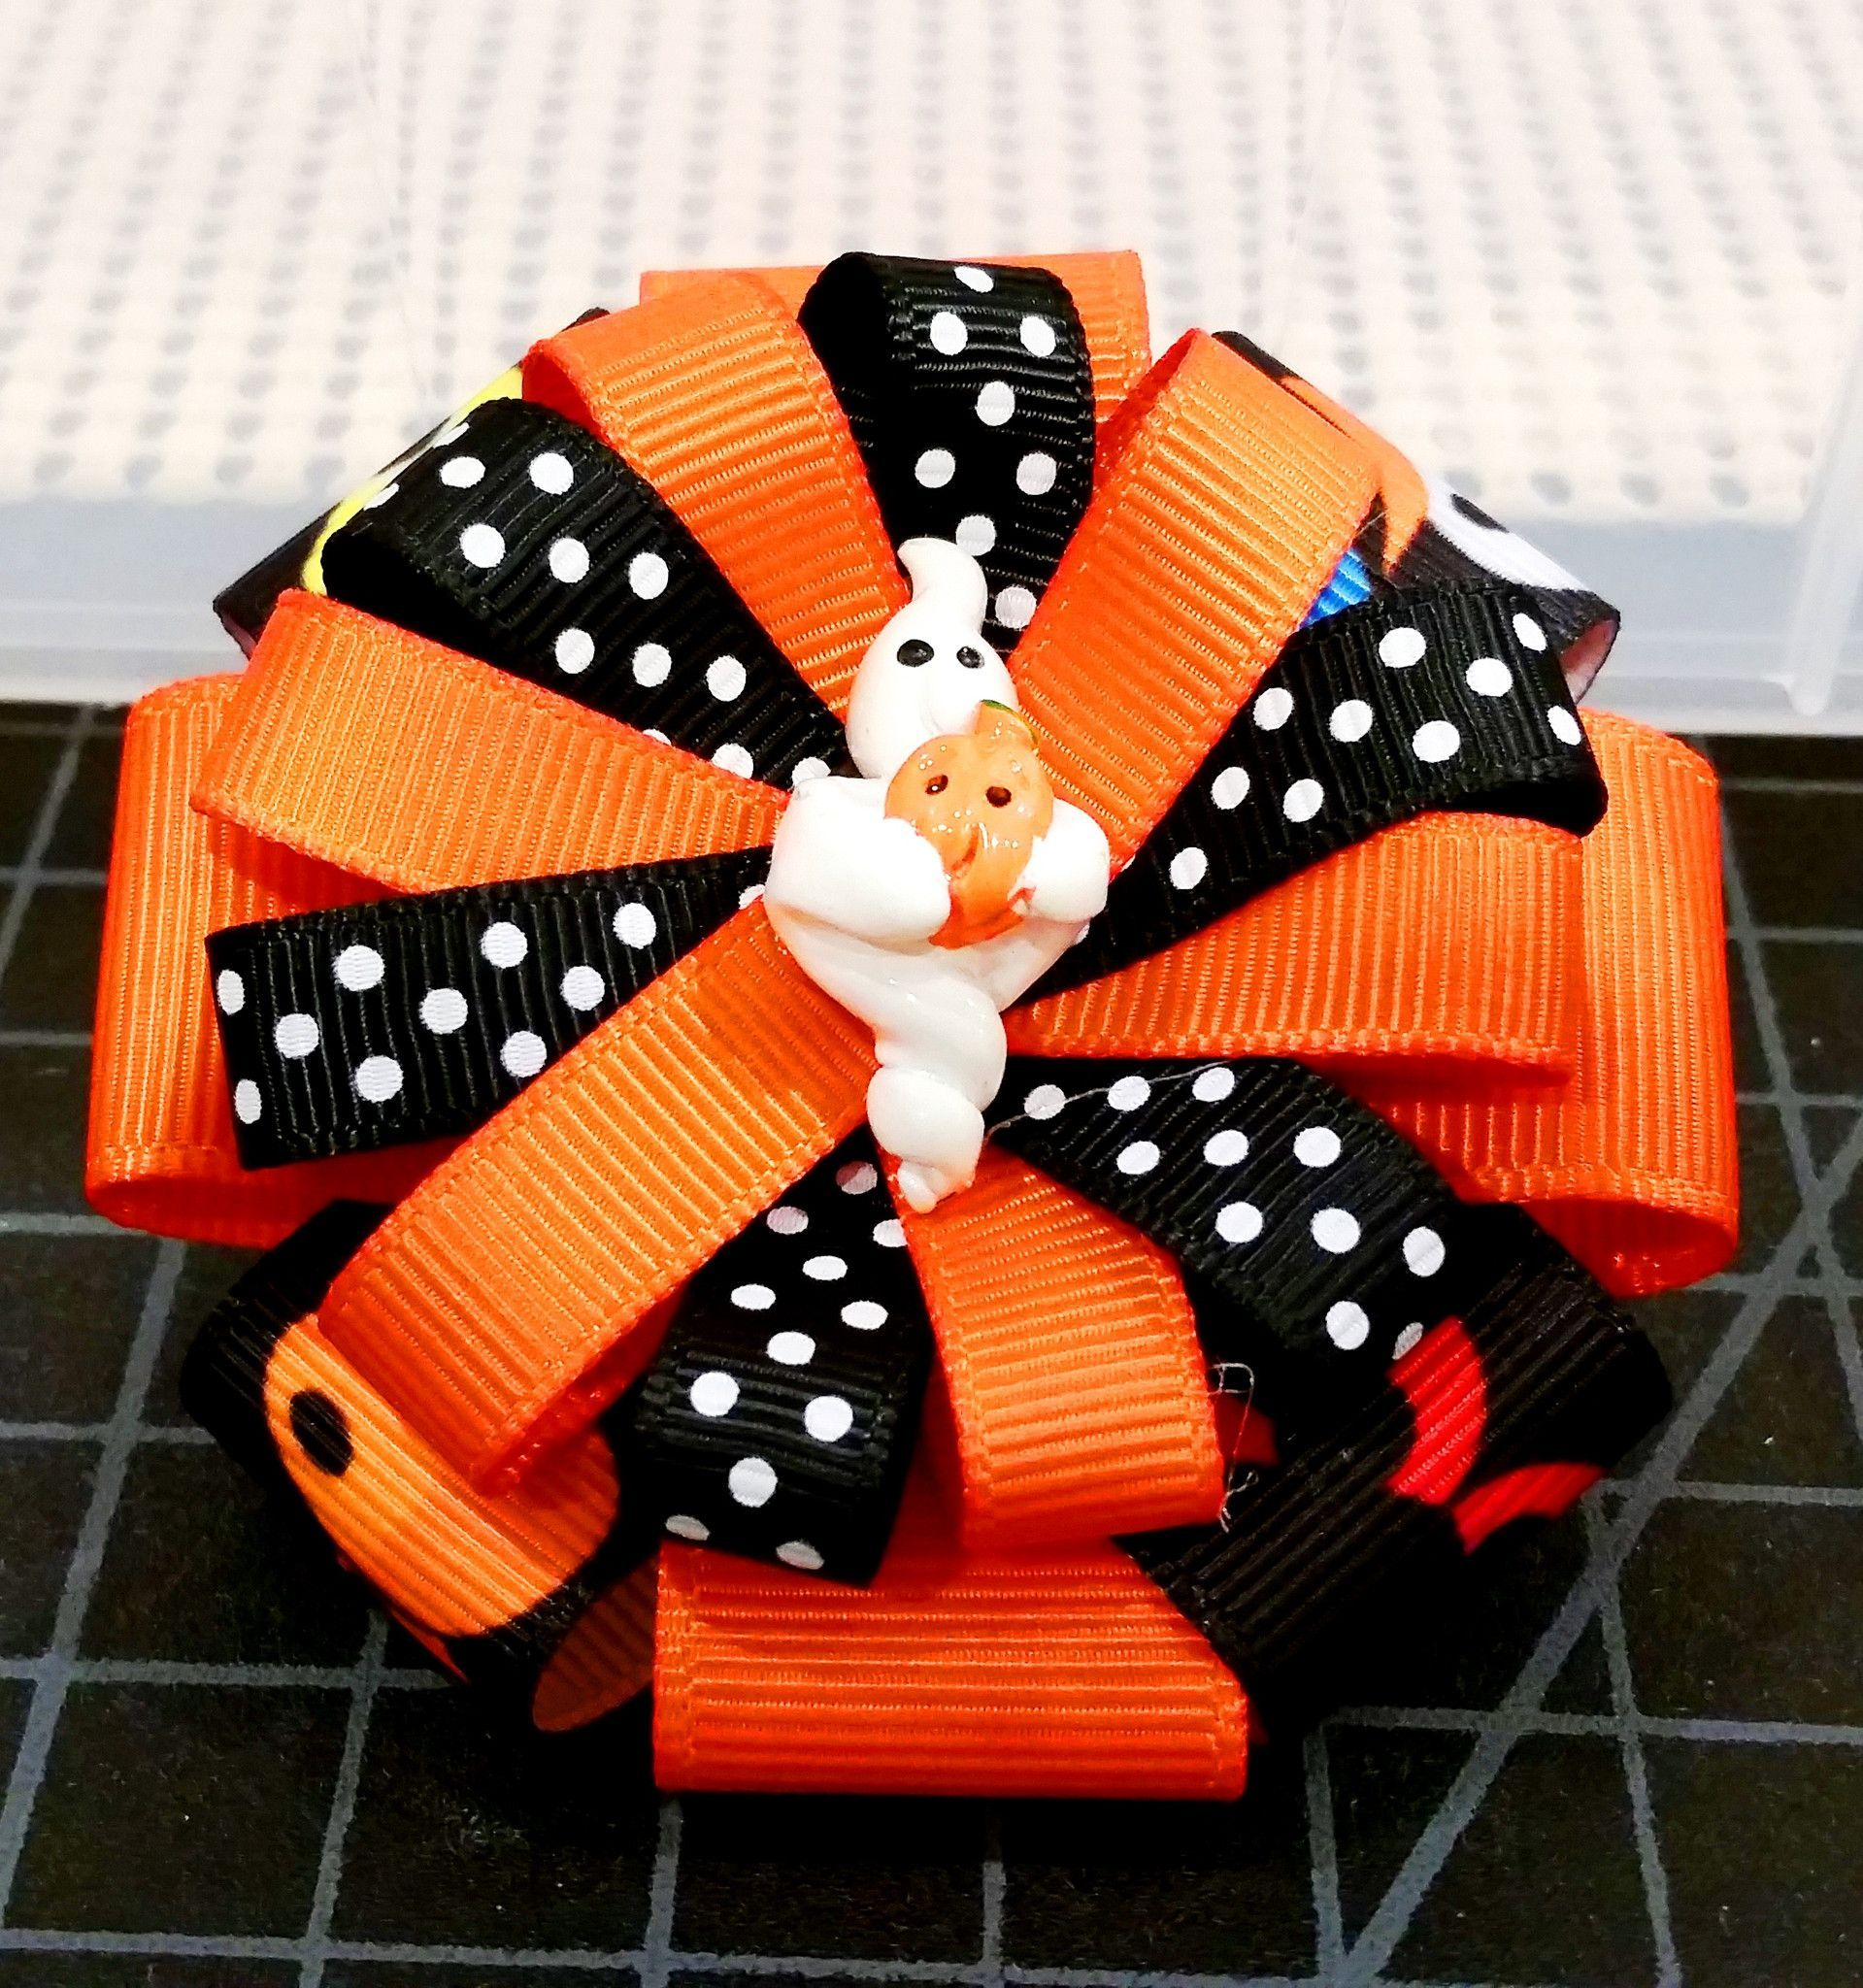 Diy halloween ghost3 - Stacked Flower Loop Hair Bow Halloween Ghost 3 Stacked Hair Bow Dual Tier With